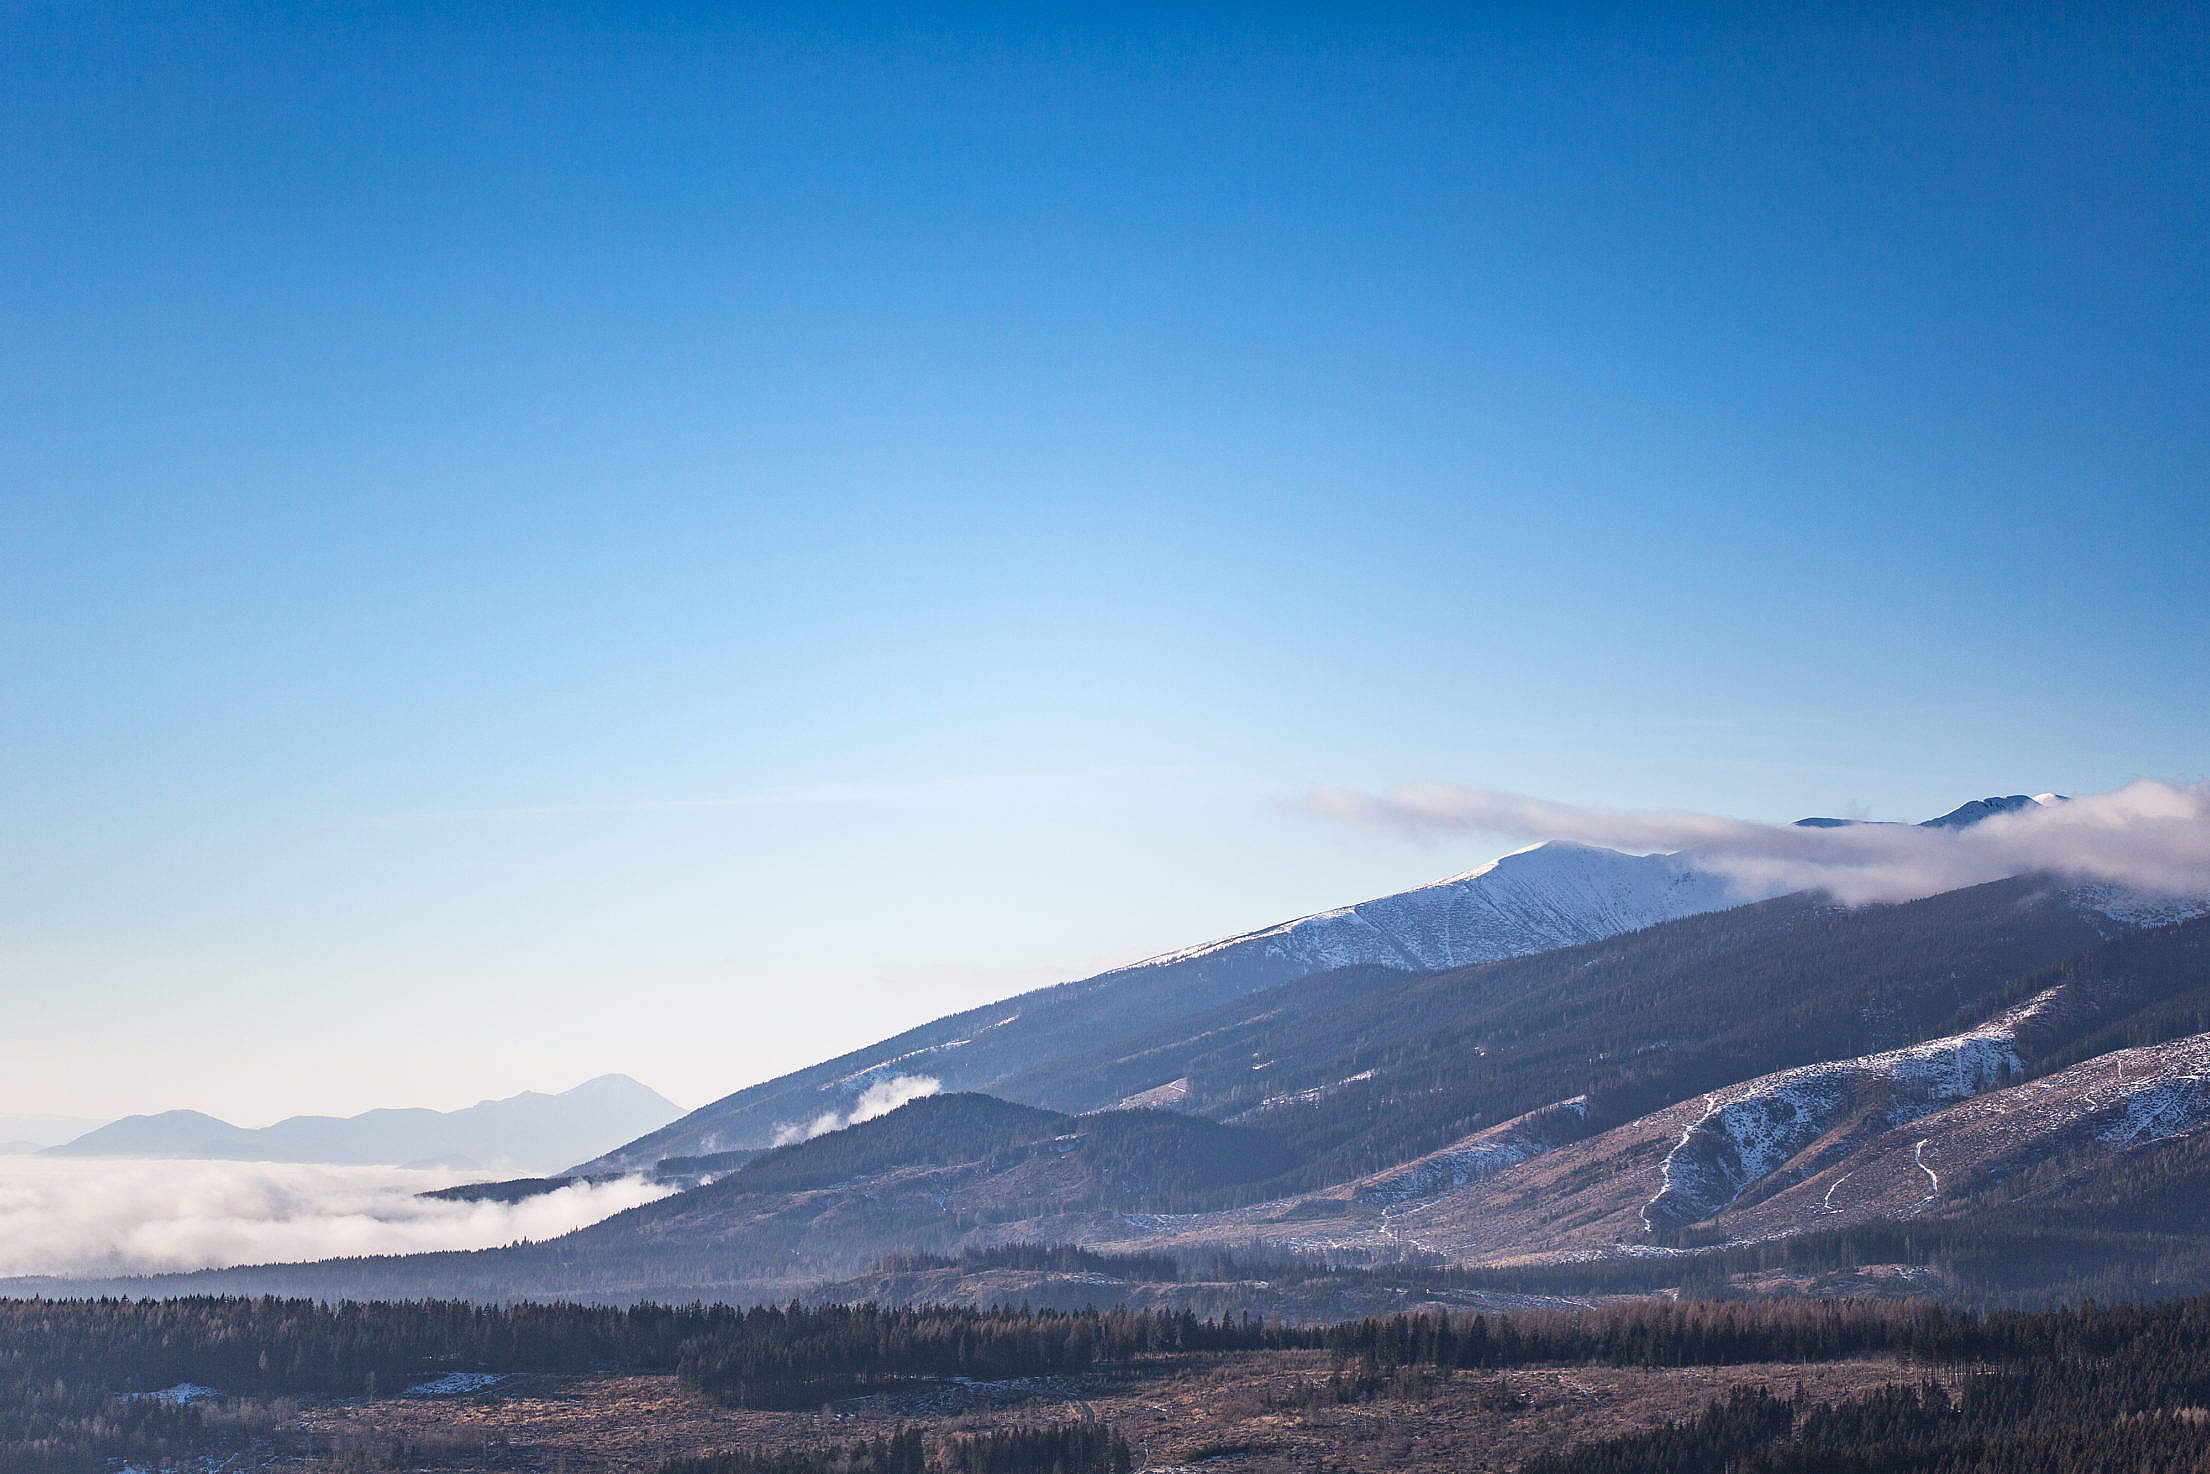 Winter Mountains and Bright Blue Sky Free Stock Photo